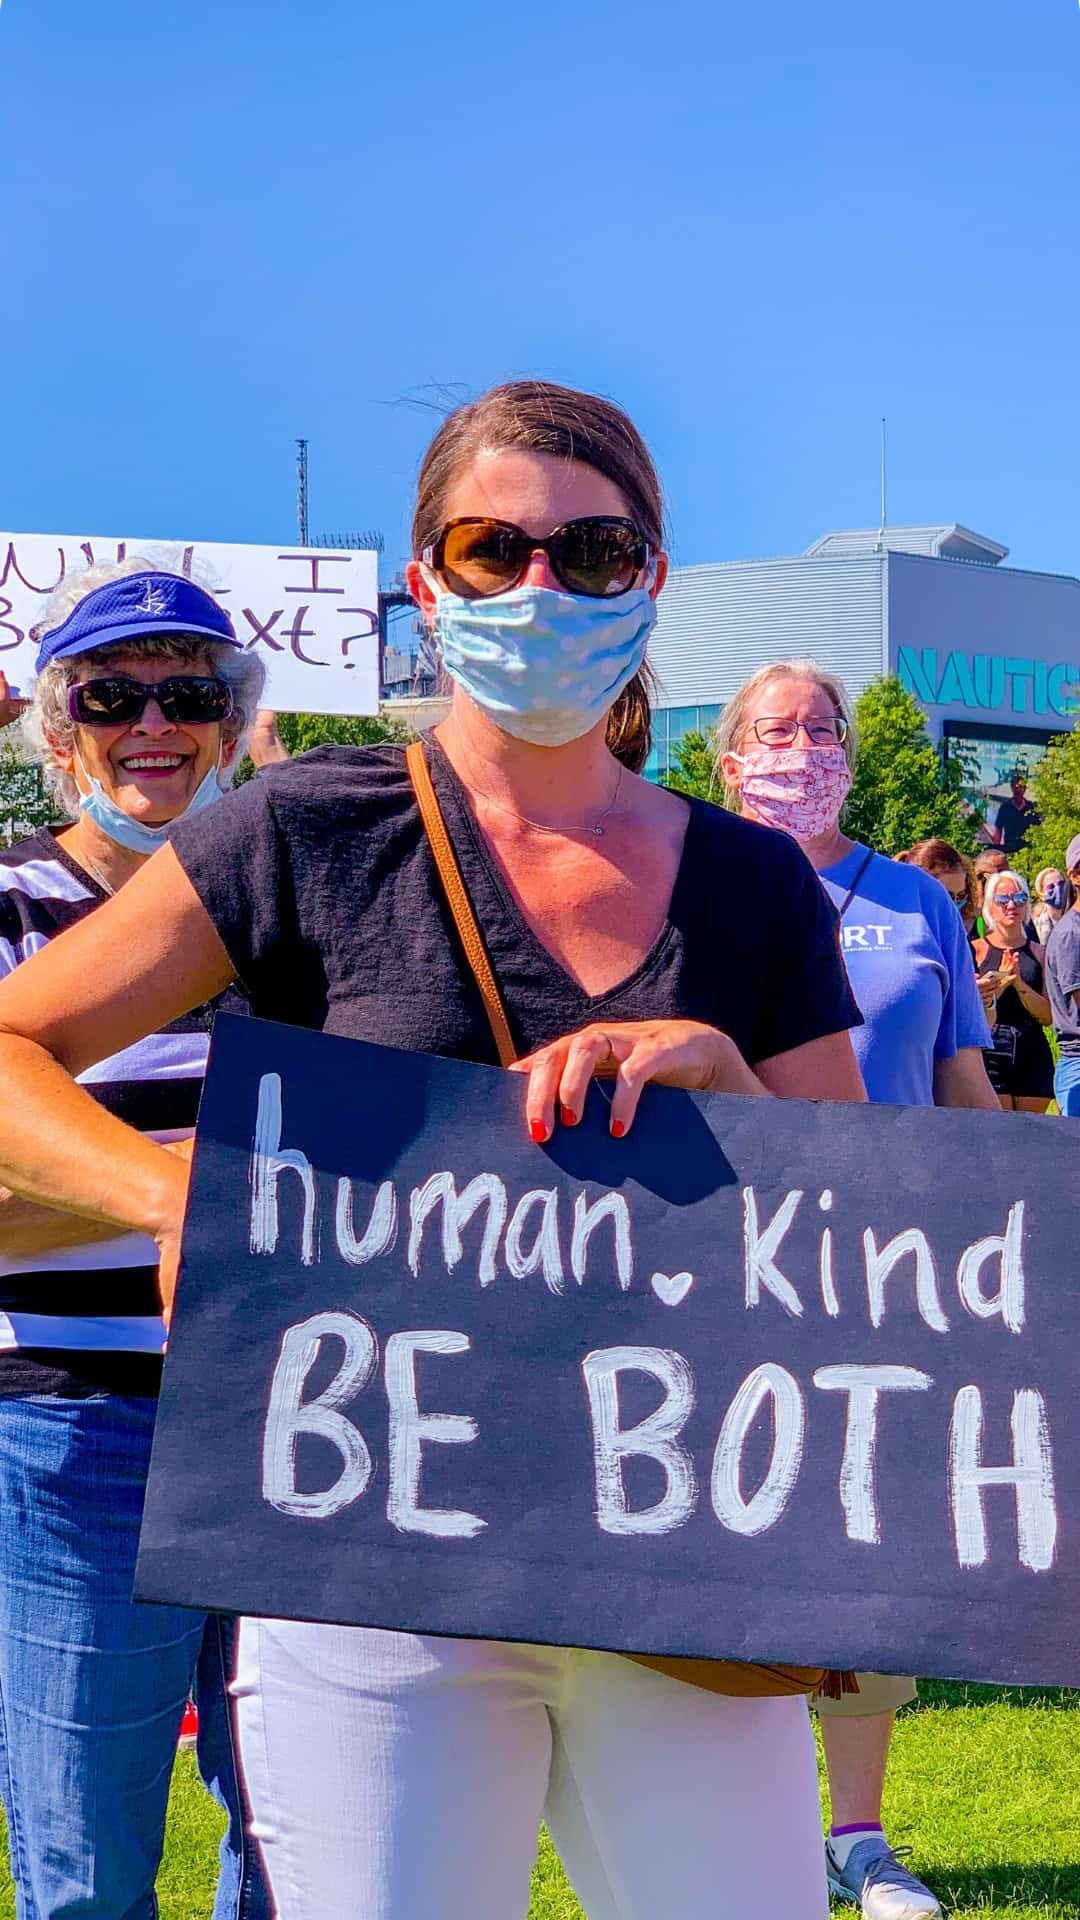 BLM Protest Signs Ideas- human, kind, be both protest sign